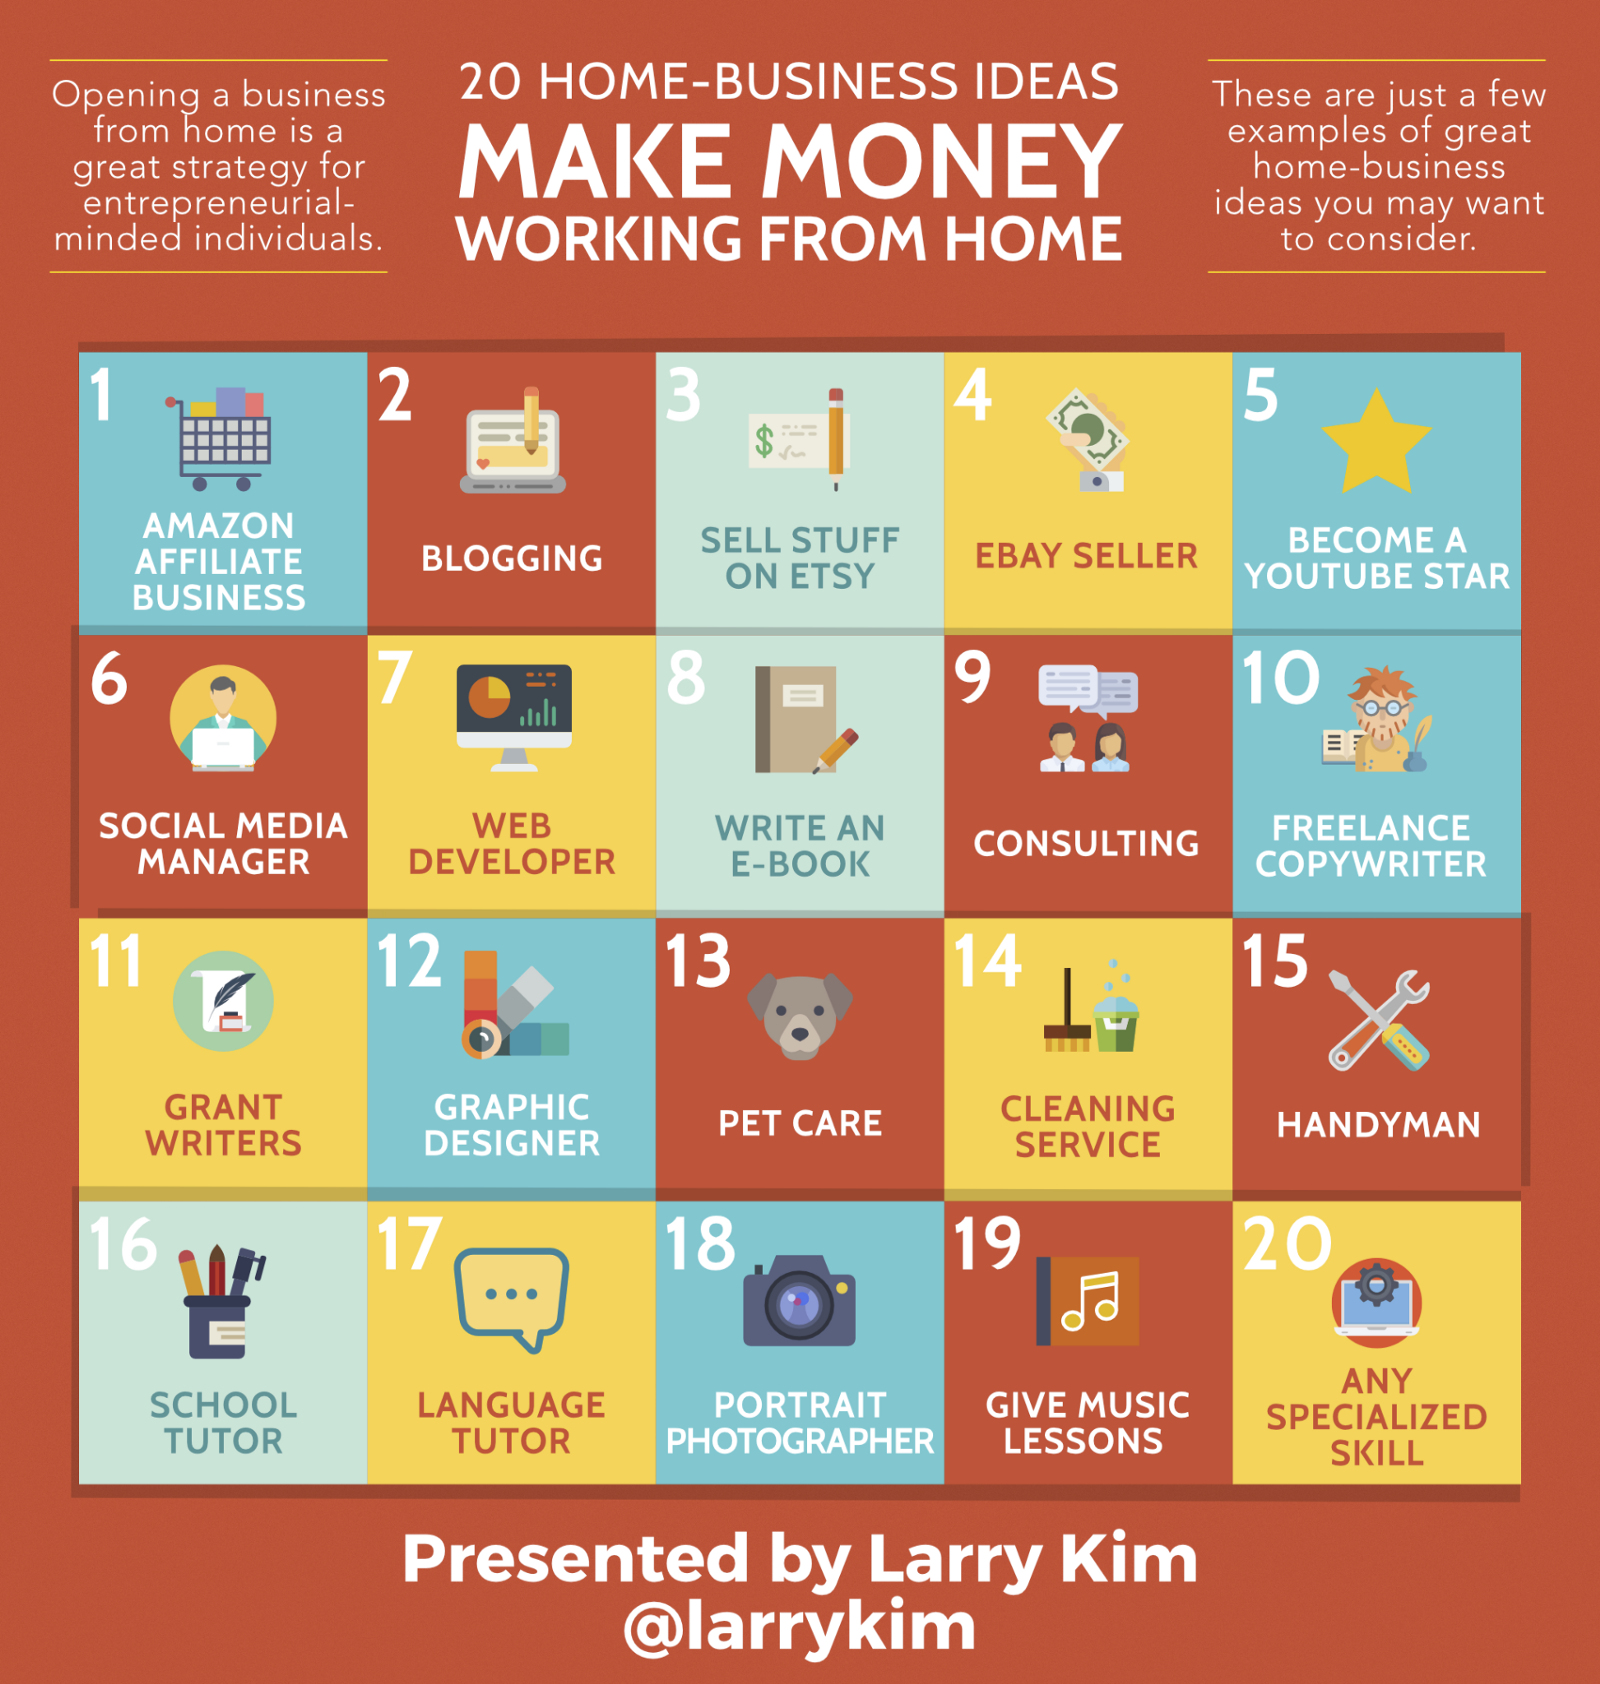 20 HomeBusiness Ideas: Make Money Working From Home